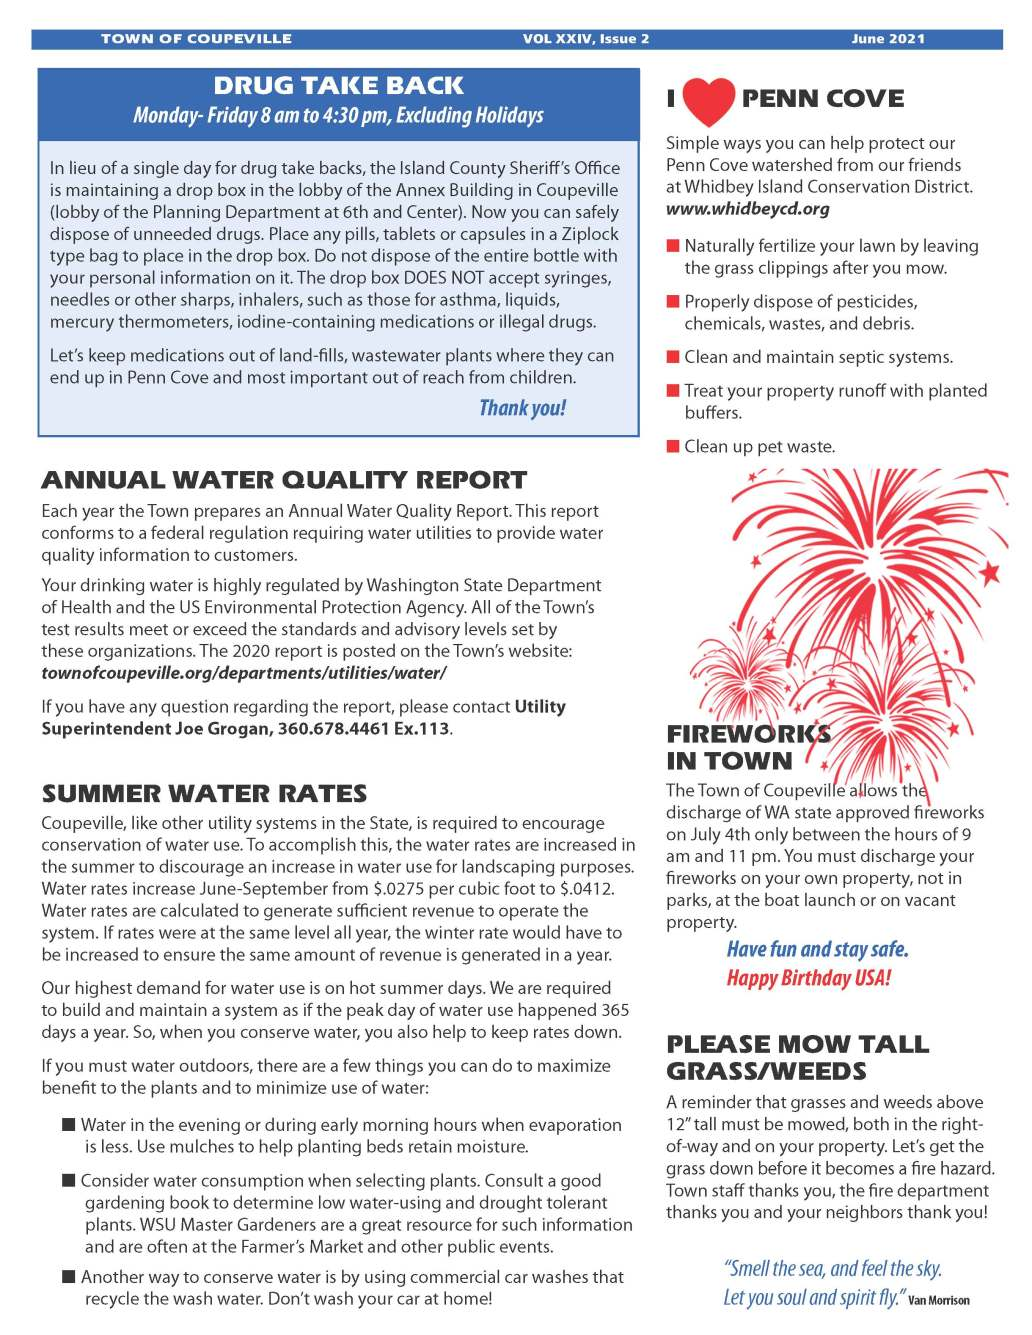 June 2021 Newsletter_Page_2